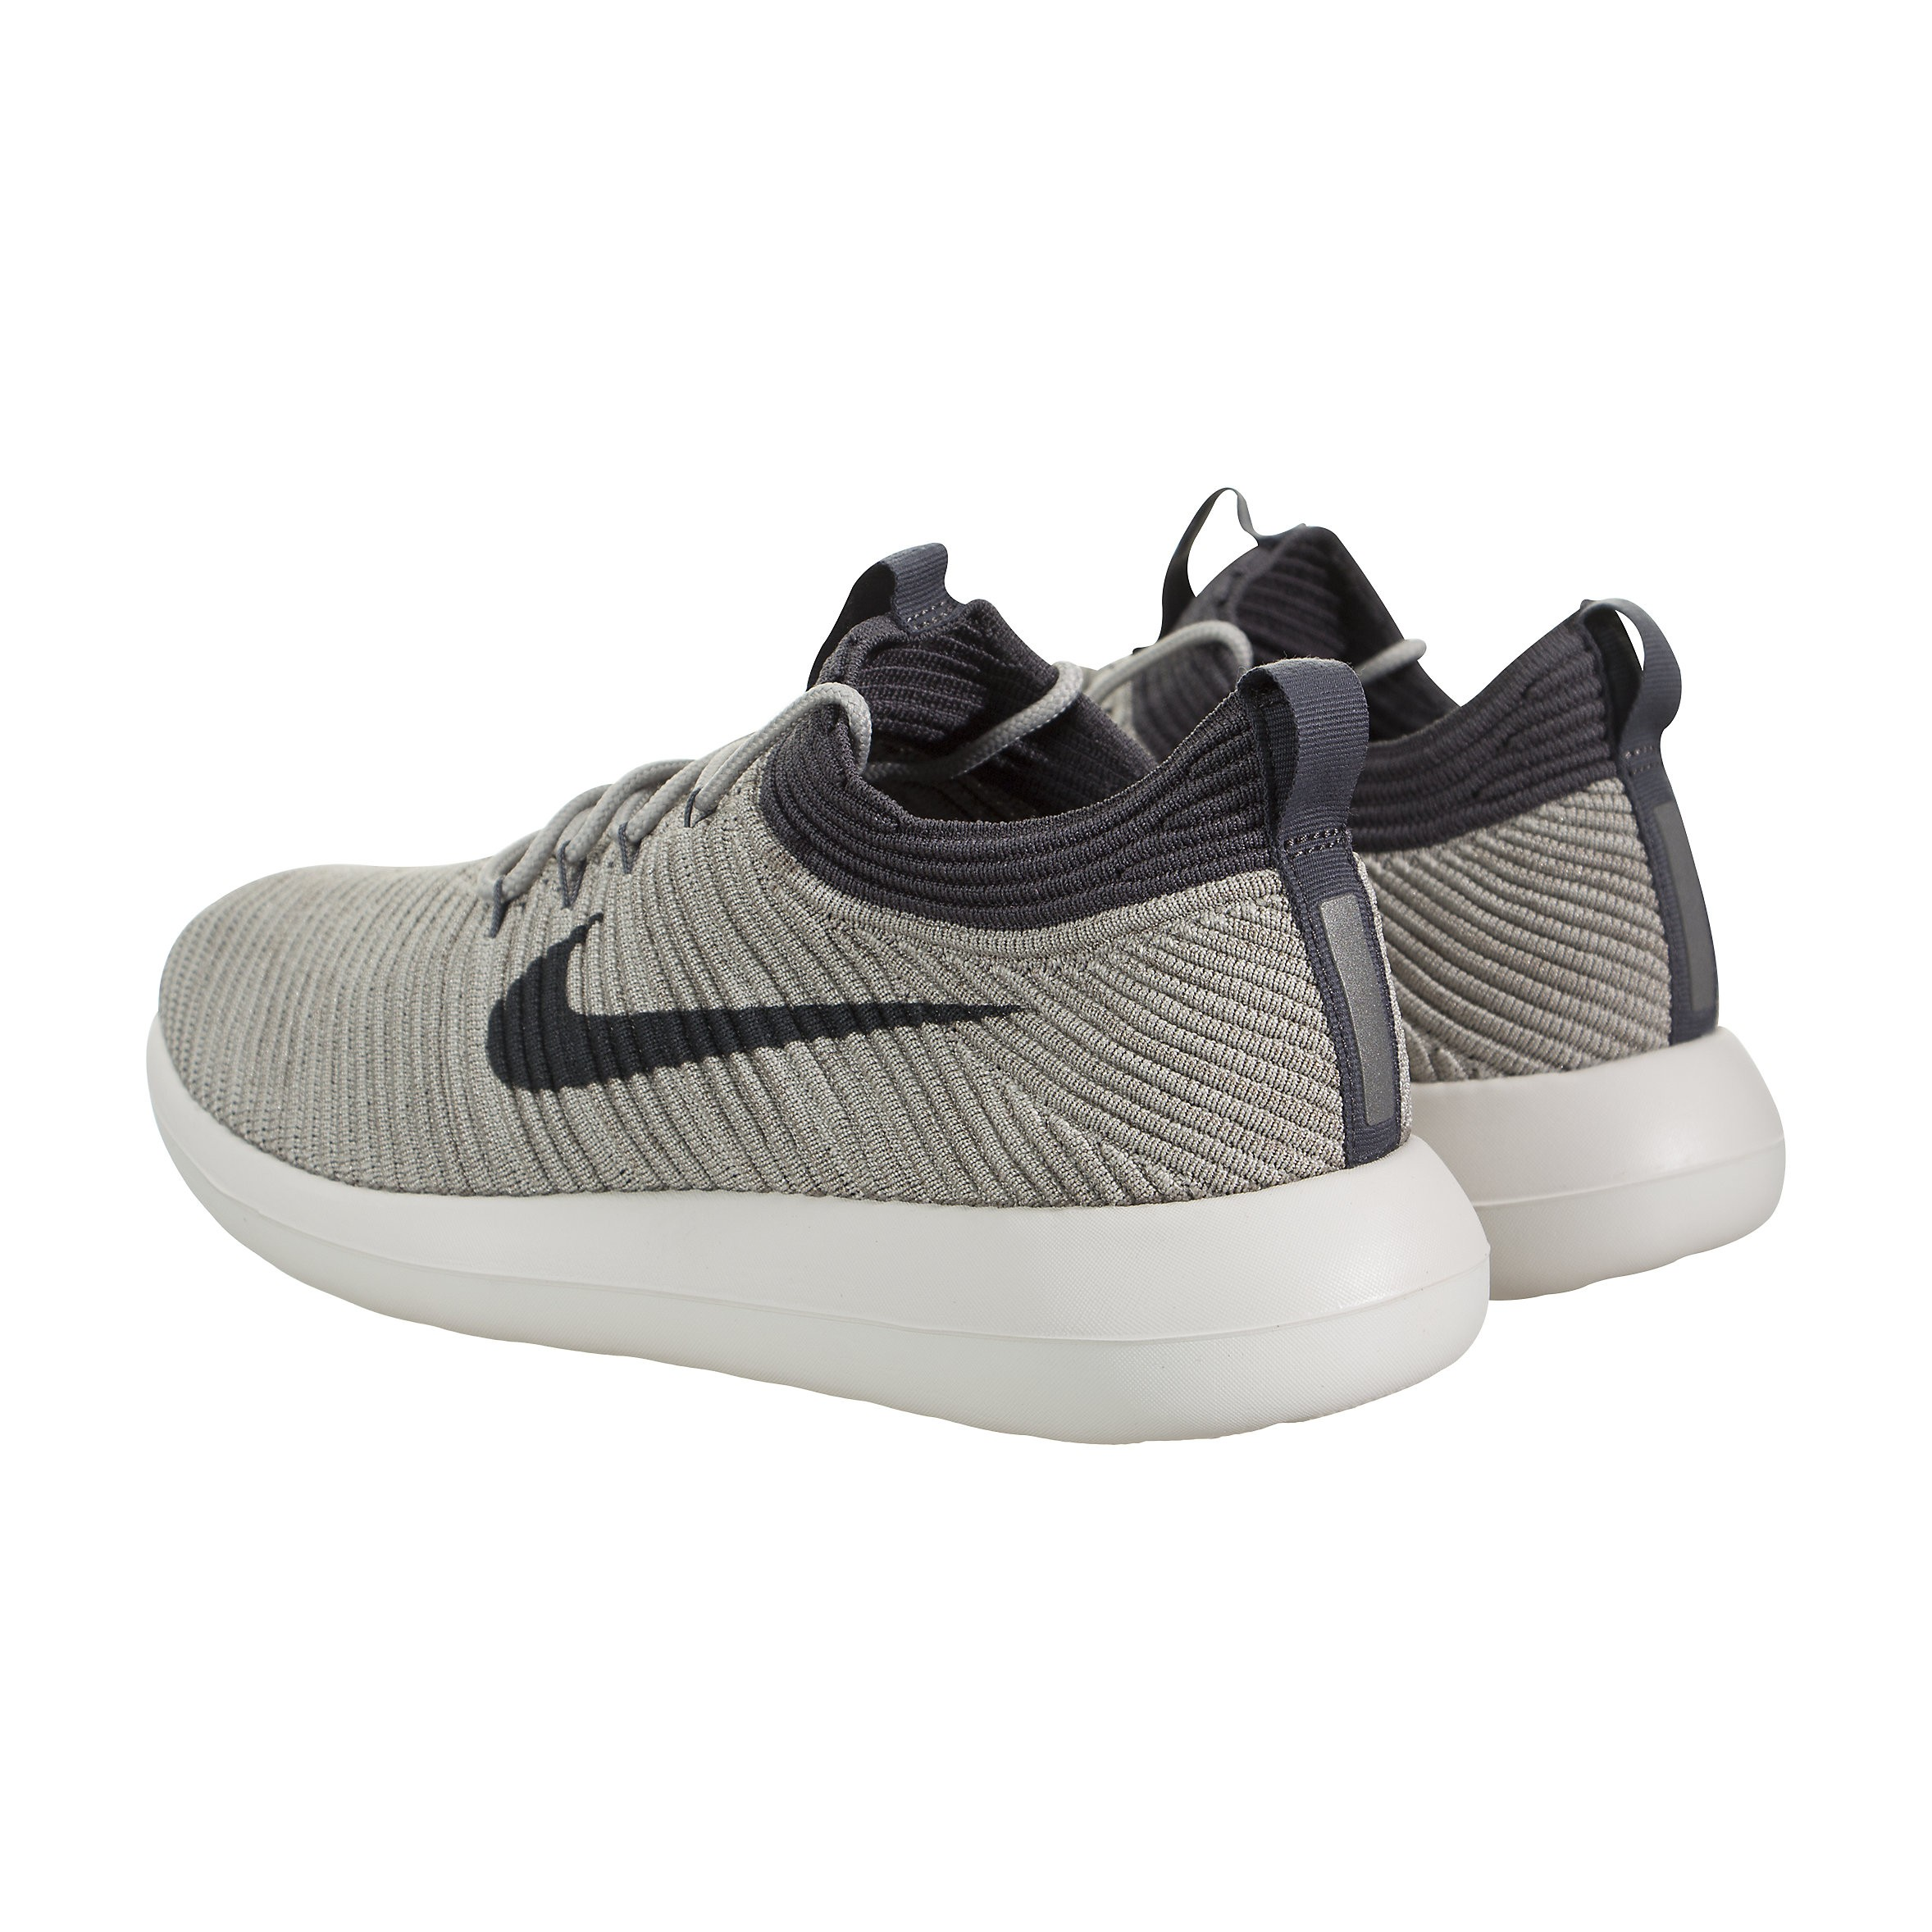 Nike Roshe Two Flyknit V2 Training Pale Grey Women's Running Training V2 Shoes Size 8 78f6b7